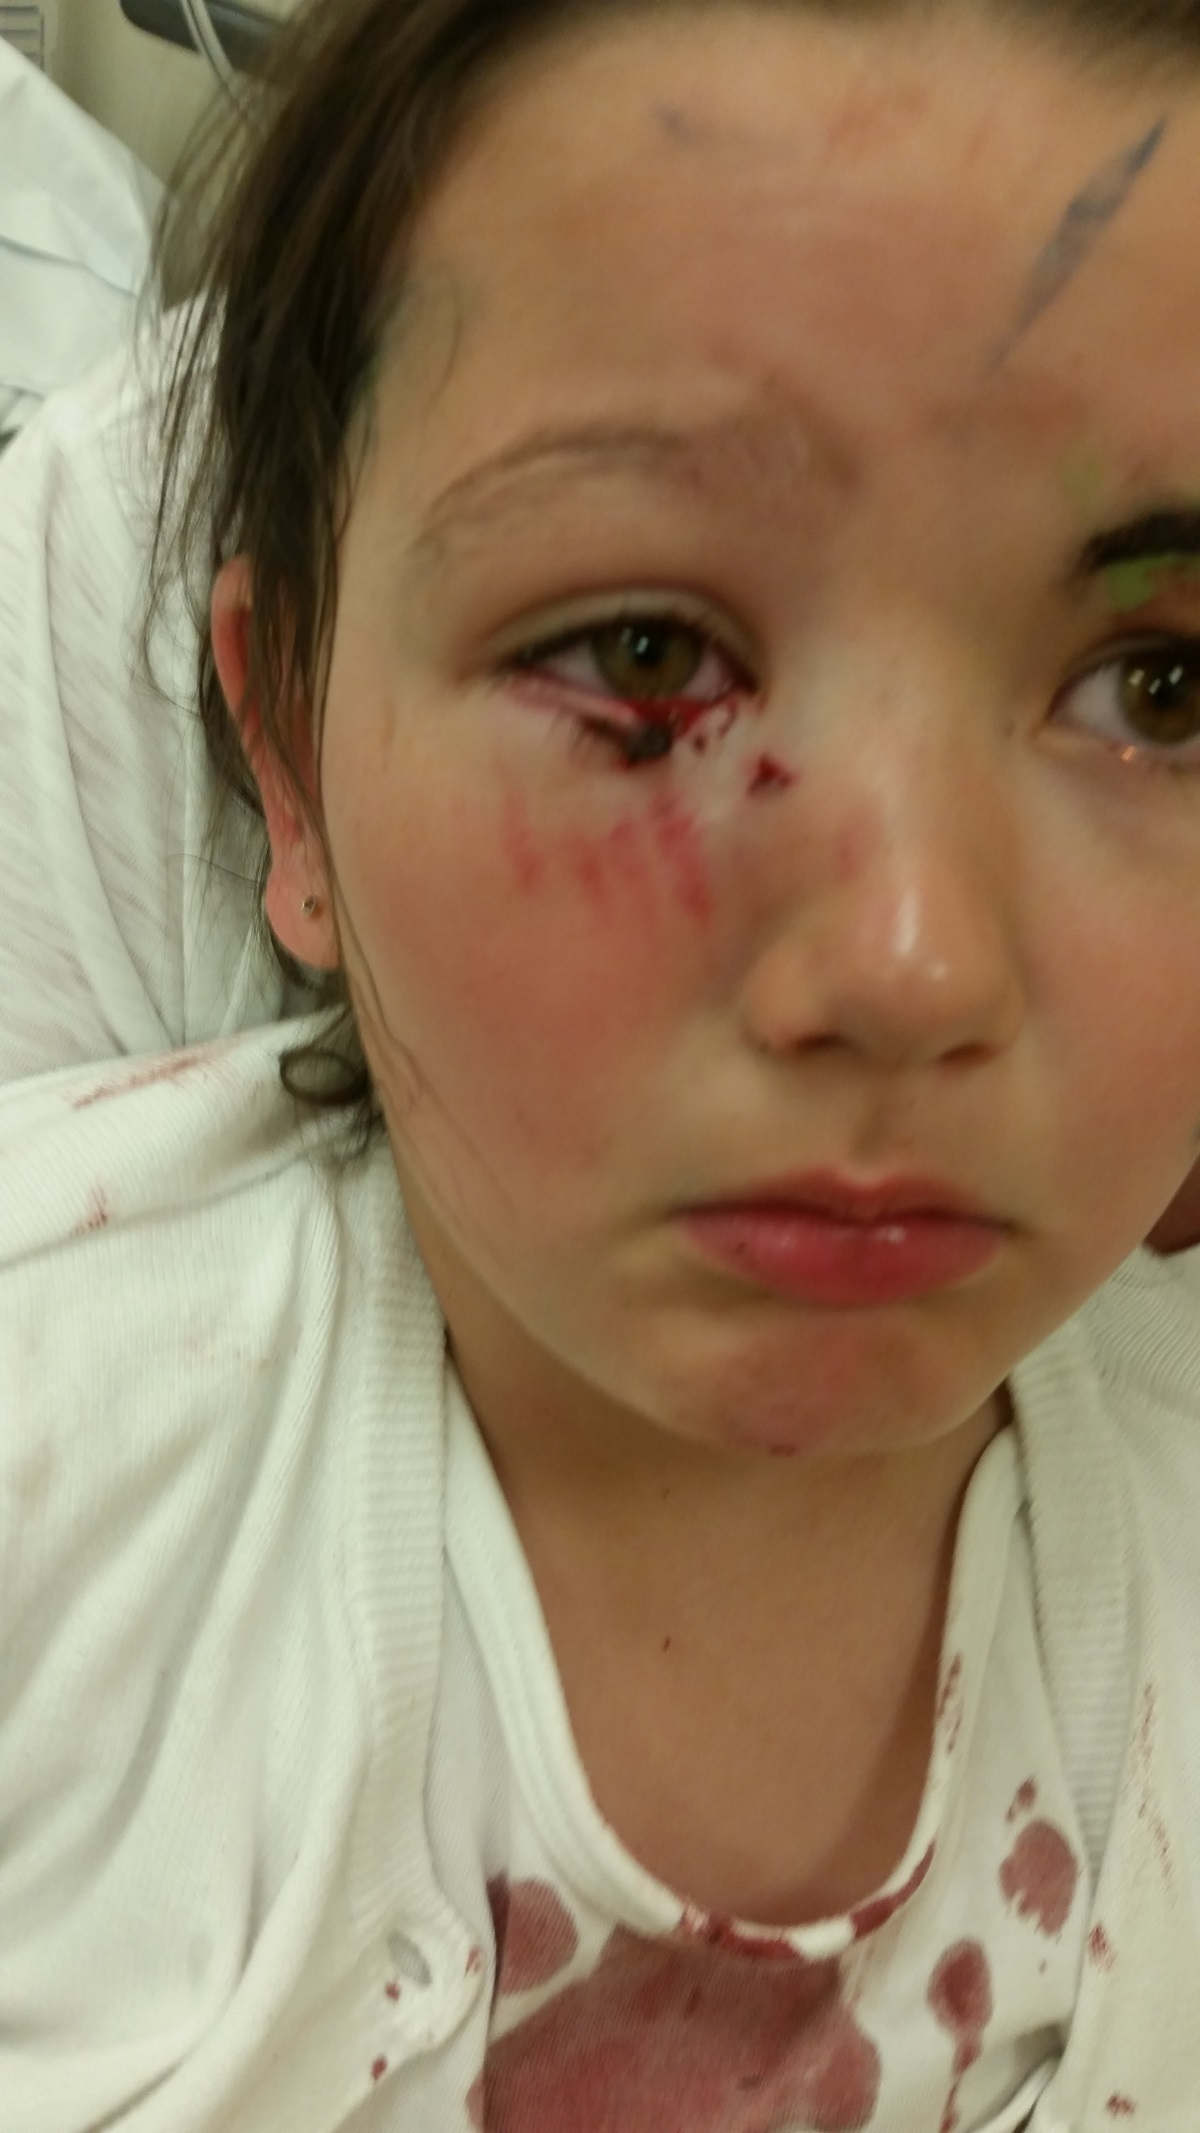 Five-year-old Nieve, from Clayton, was attacked by a Staffordshire bull terrier-type dog in Hebden Bridge